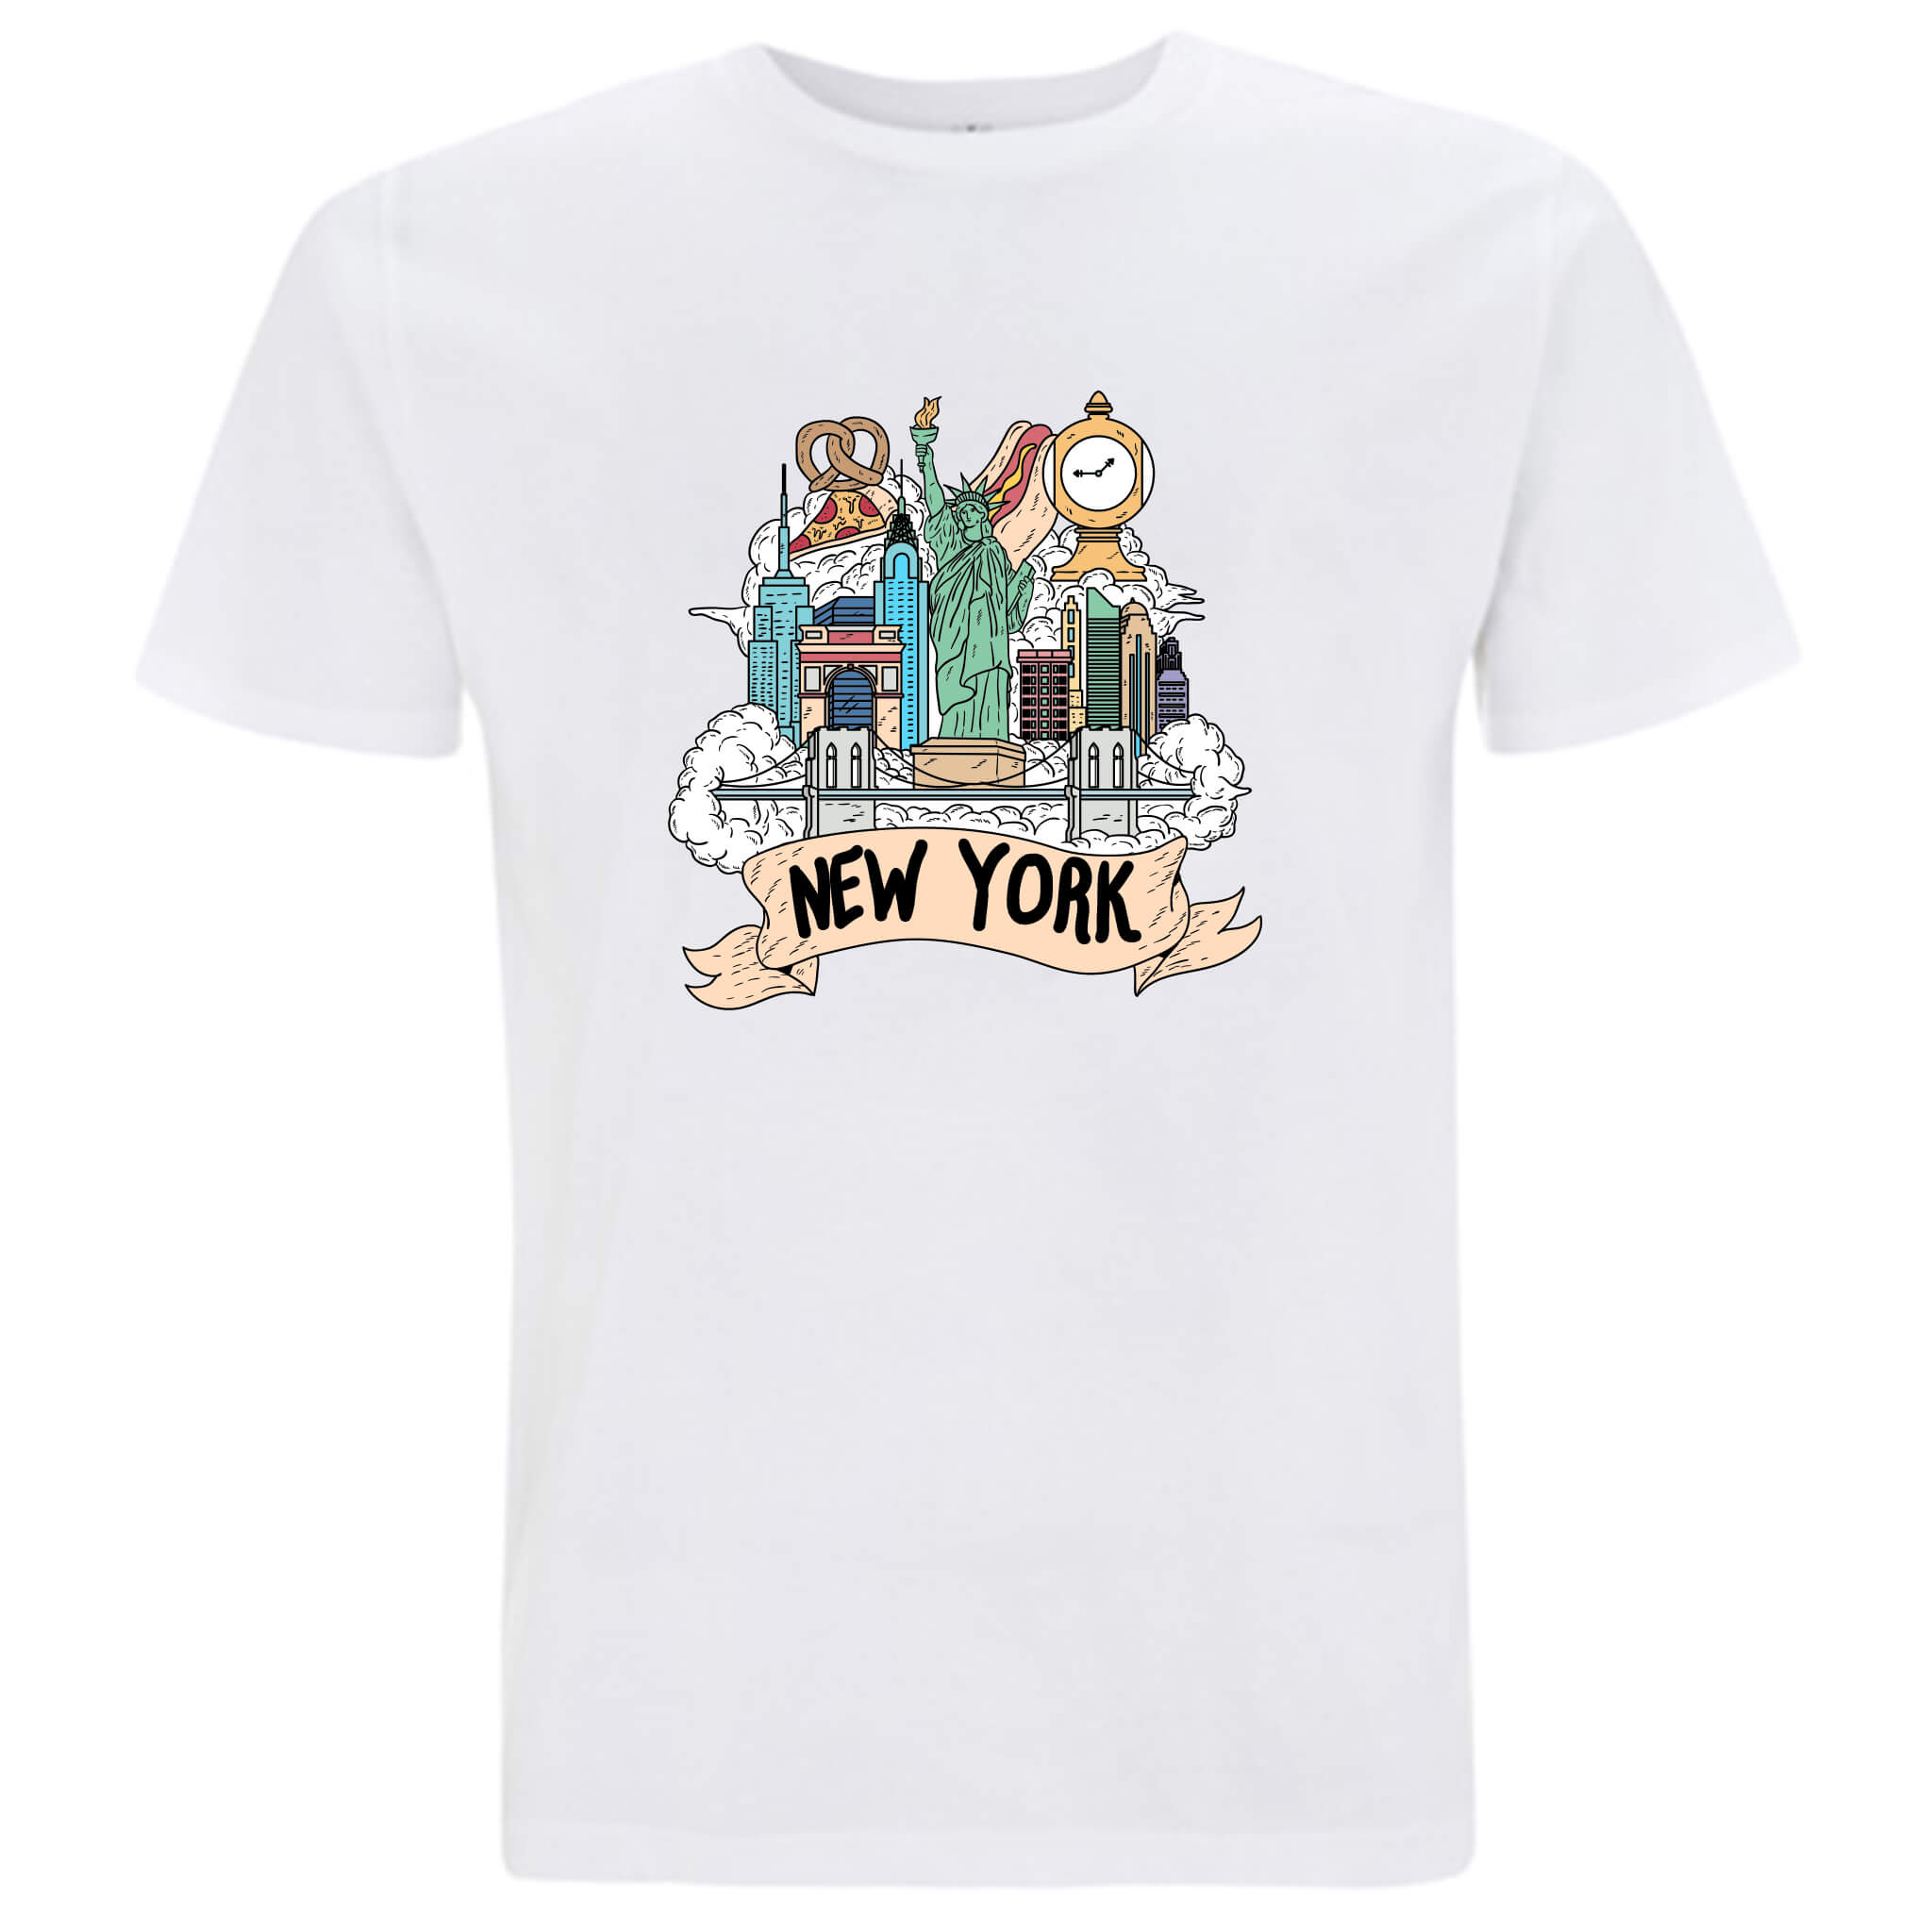 Località: New York - T-shirt Uomo - T-Shirt by Fol The Brand